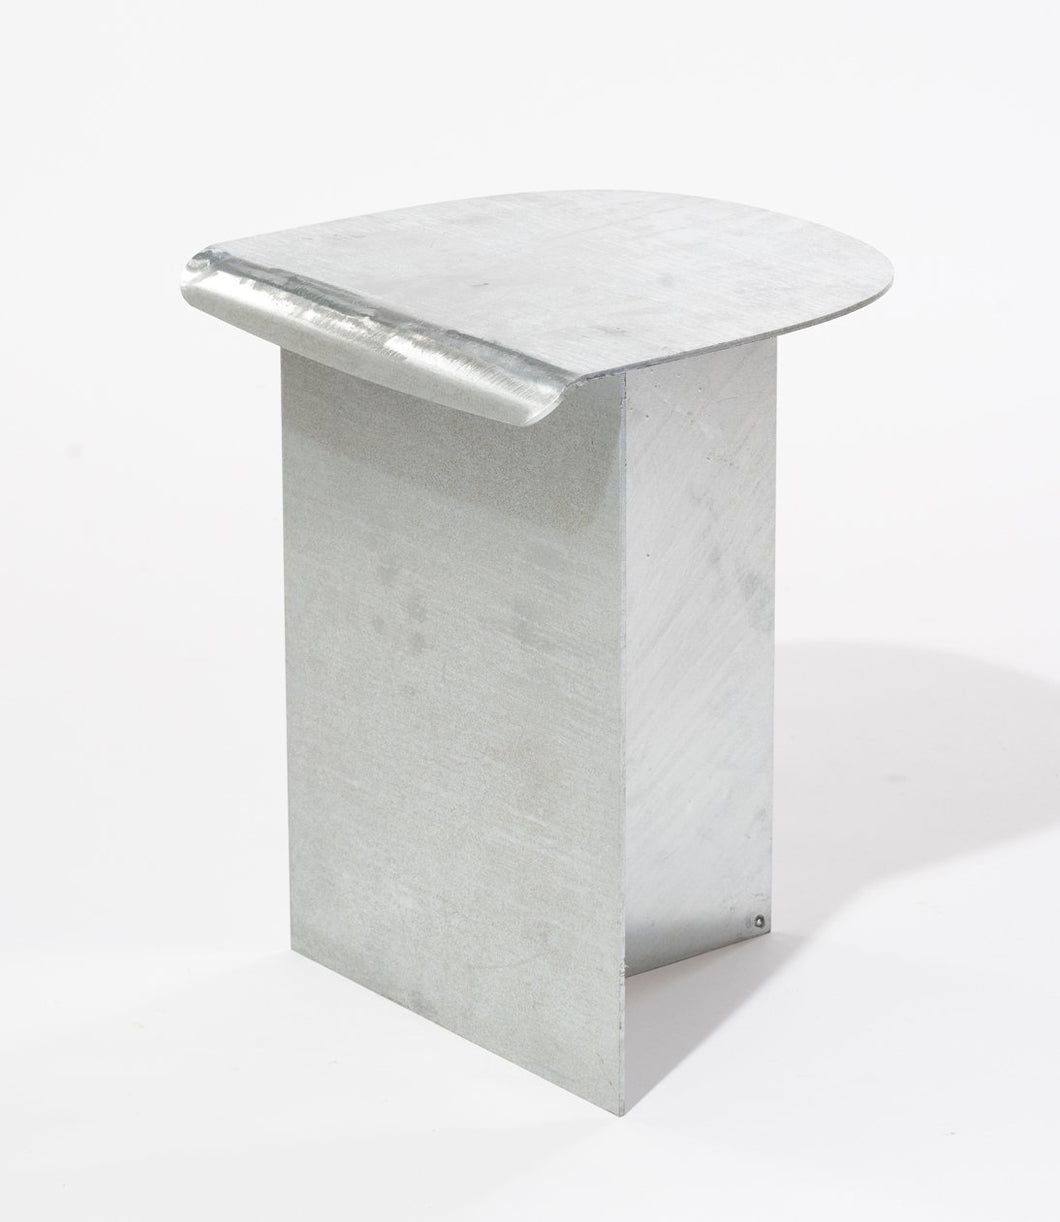 Limited edition Häfla stool by Form us with love for Häfla Bruk